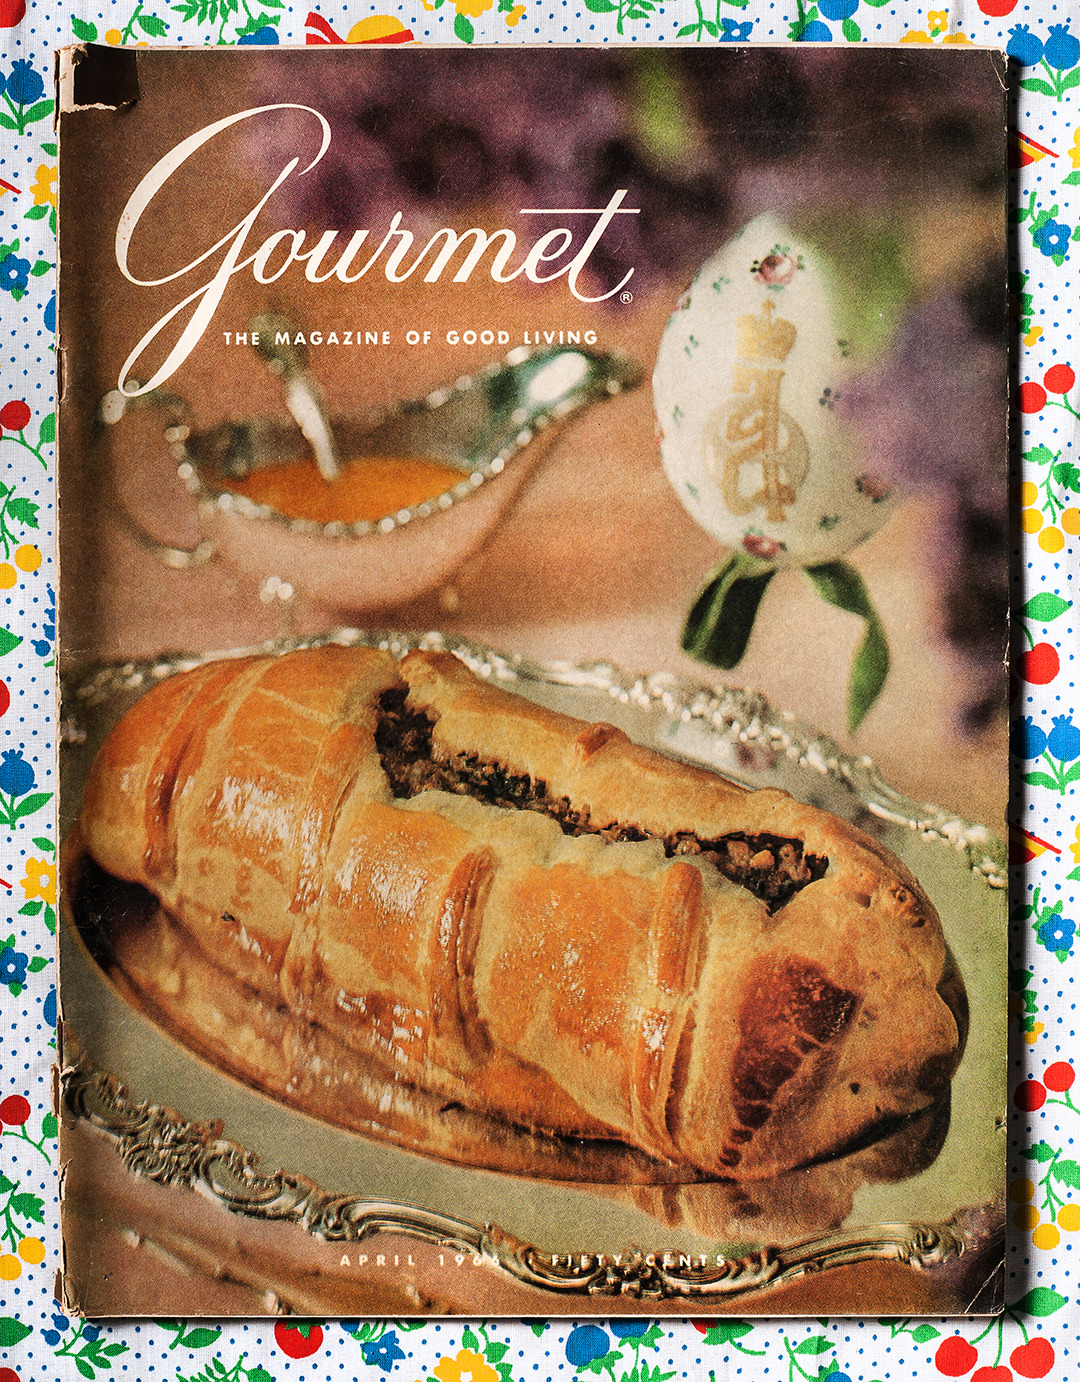 Gourmet: April 1966